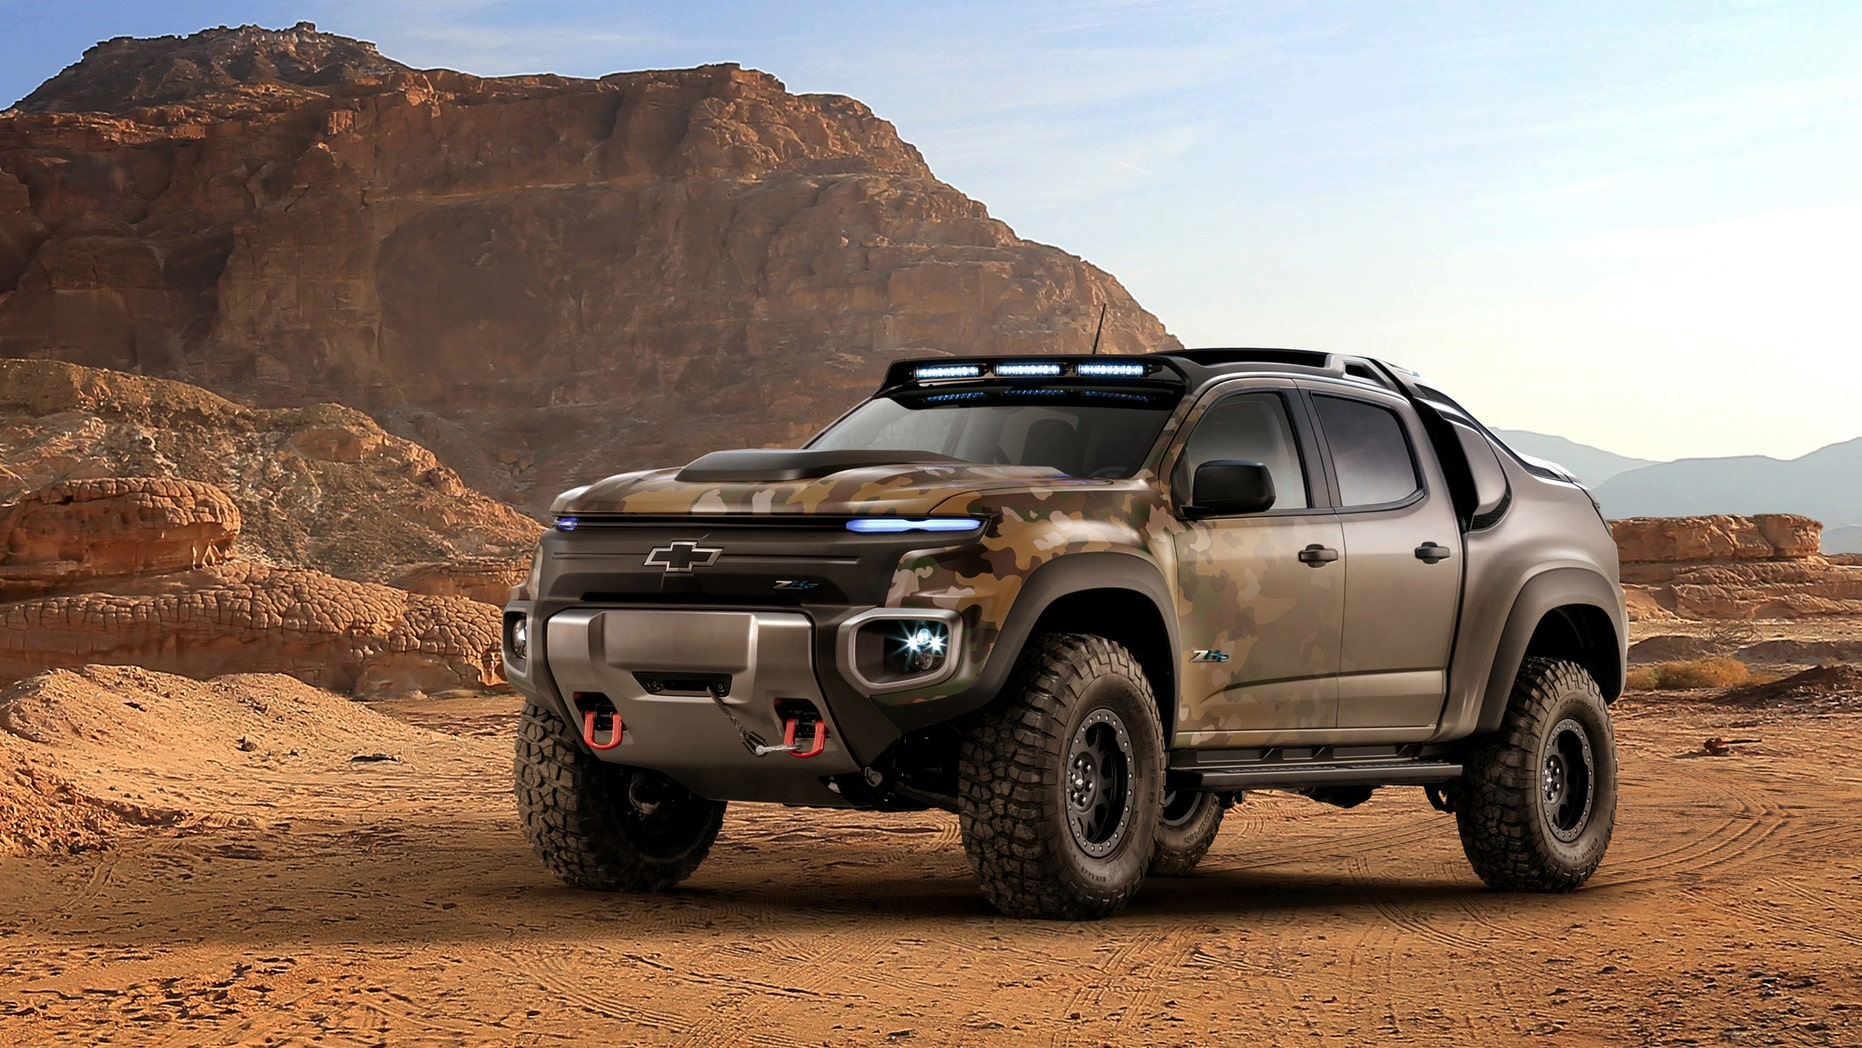 General Motors and the U.S. Army Tank Automotive Research, Development and Engineering Center (TARDEC) on Monday (Oct. 3) revealed the Chevrolet Colorado ZH2 fuel cell electric vehicle, a concept that marries fuel cell technology and its advantages of on-board water production, exportable electric power and near silent operation with extreme off-road capability.